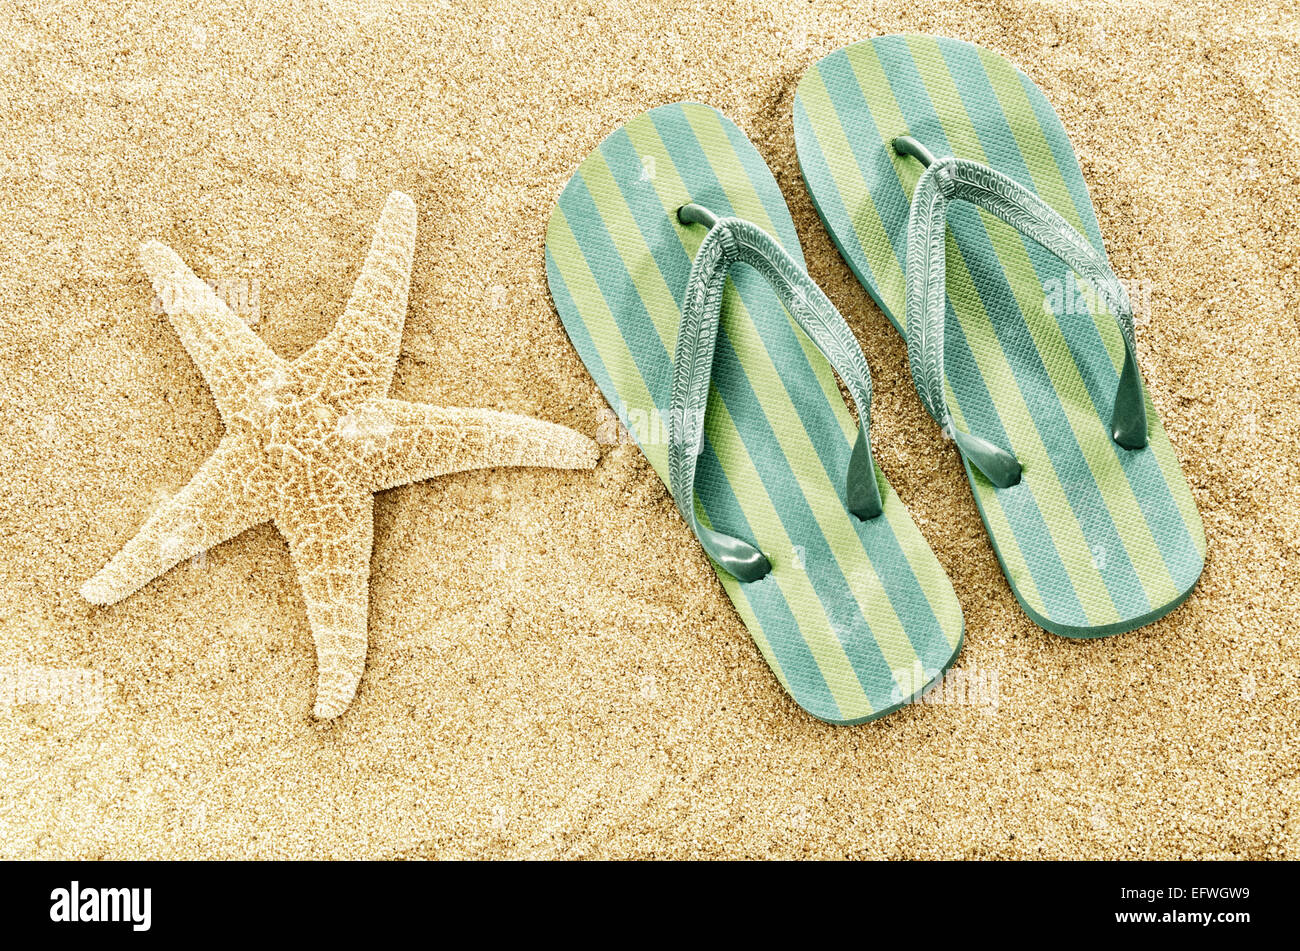 306d6961a4d49 Flip flops beach slippers on sandy beach starfish summer holiday vacation  concept copy space Digital filters faded retro vintage